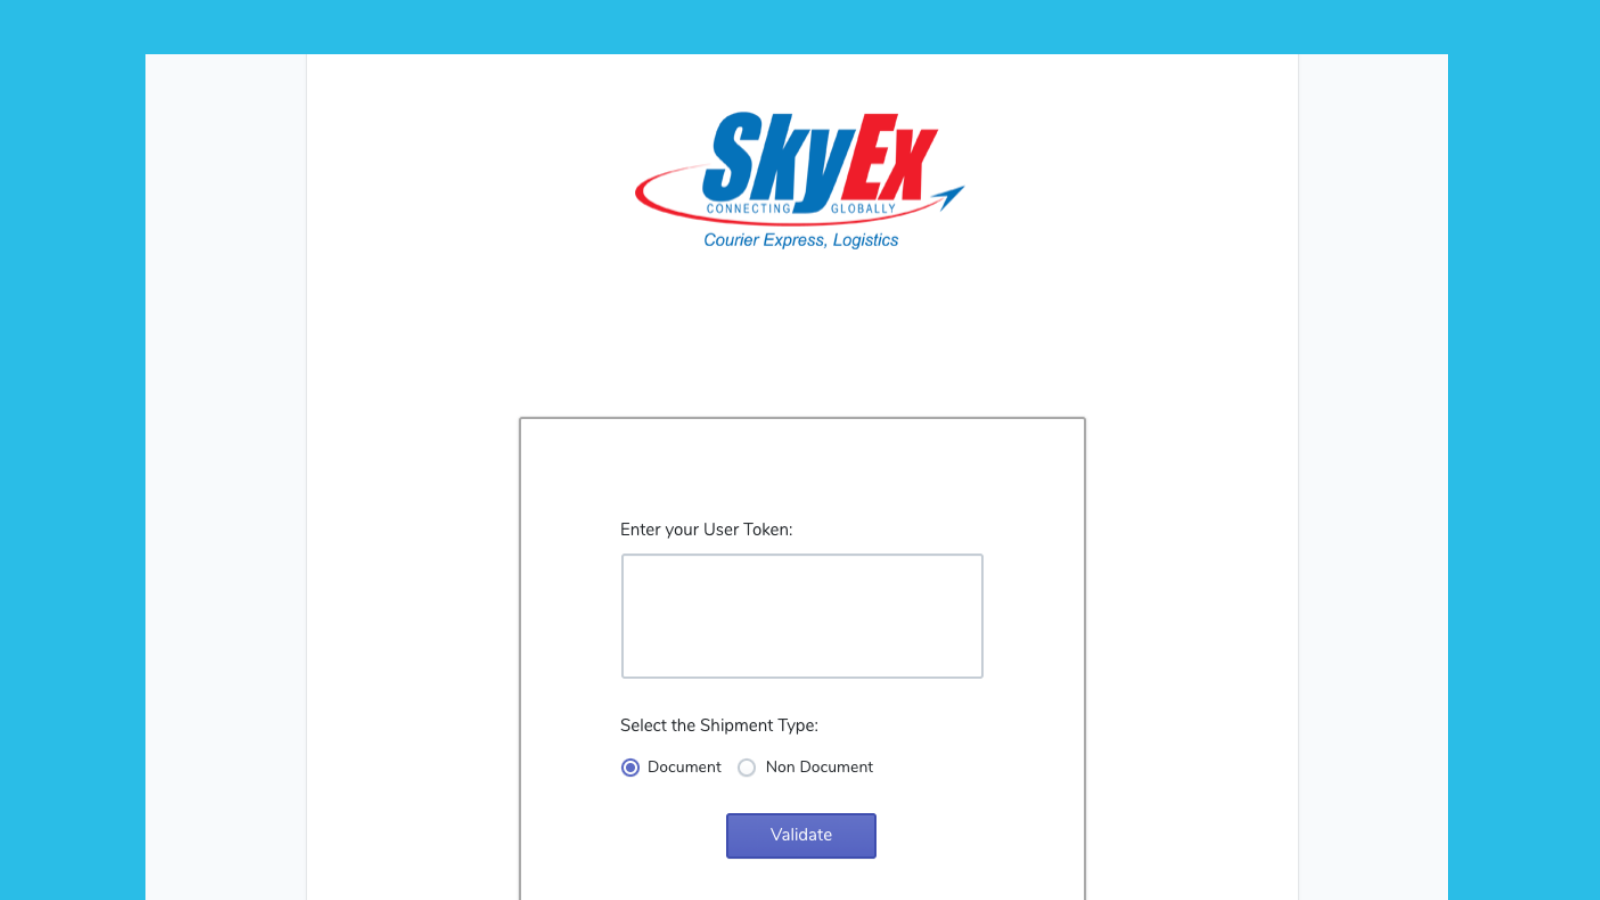 Enter your unique User Token received from SkyEx Courier.